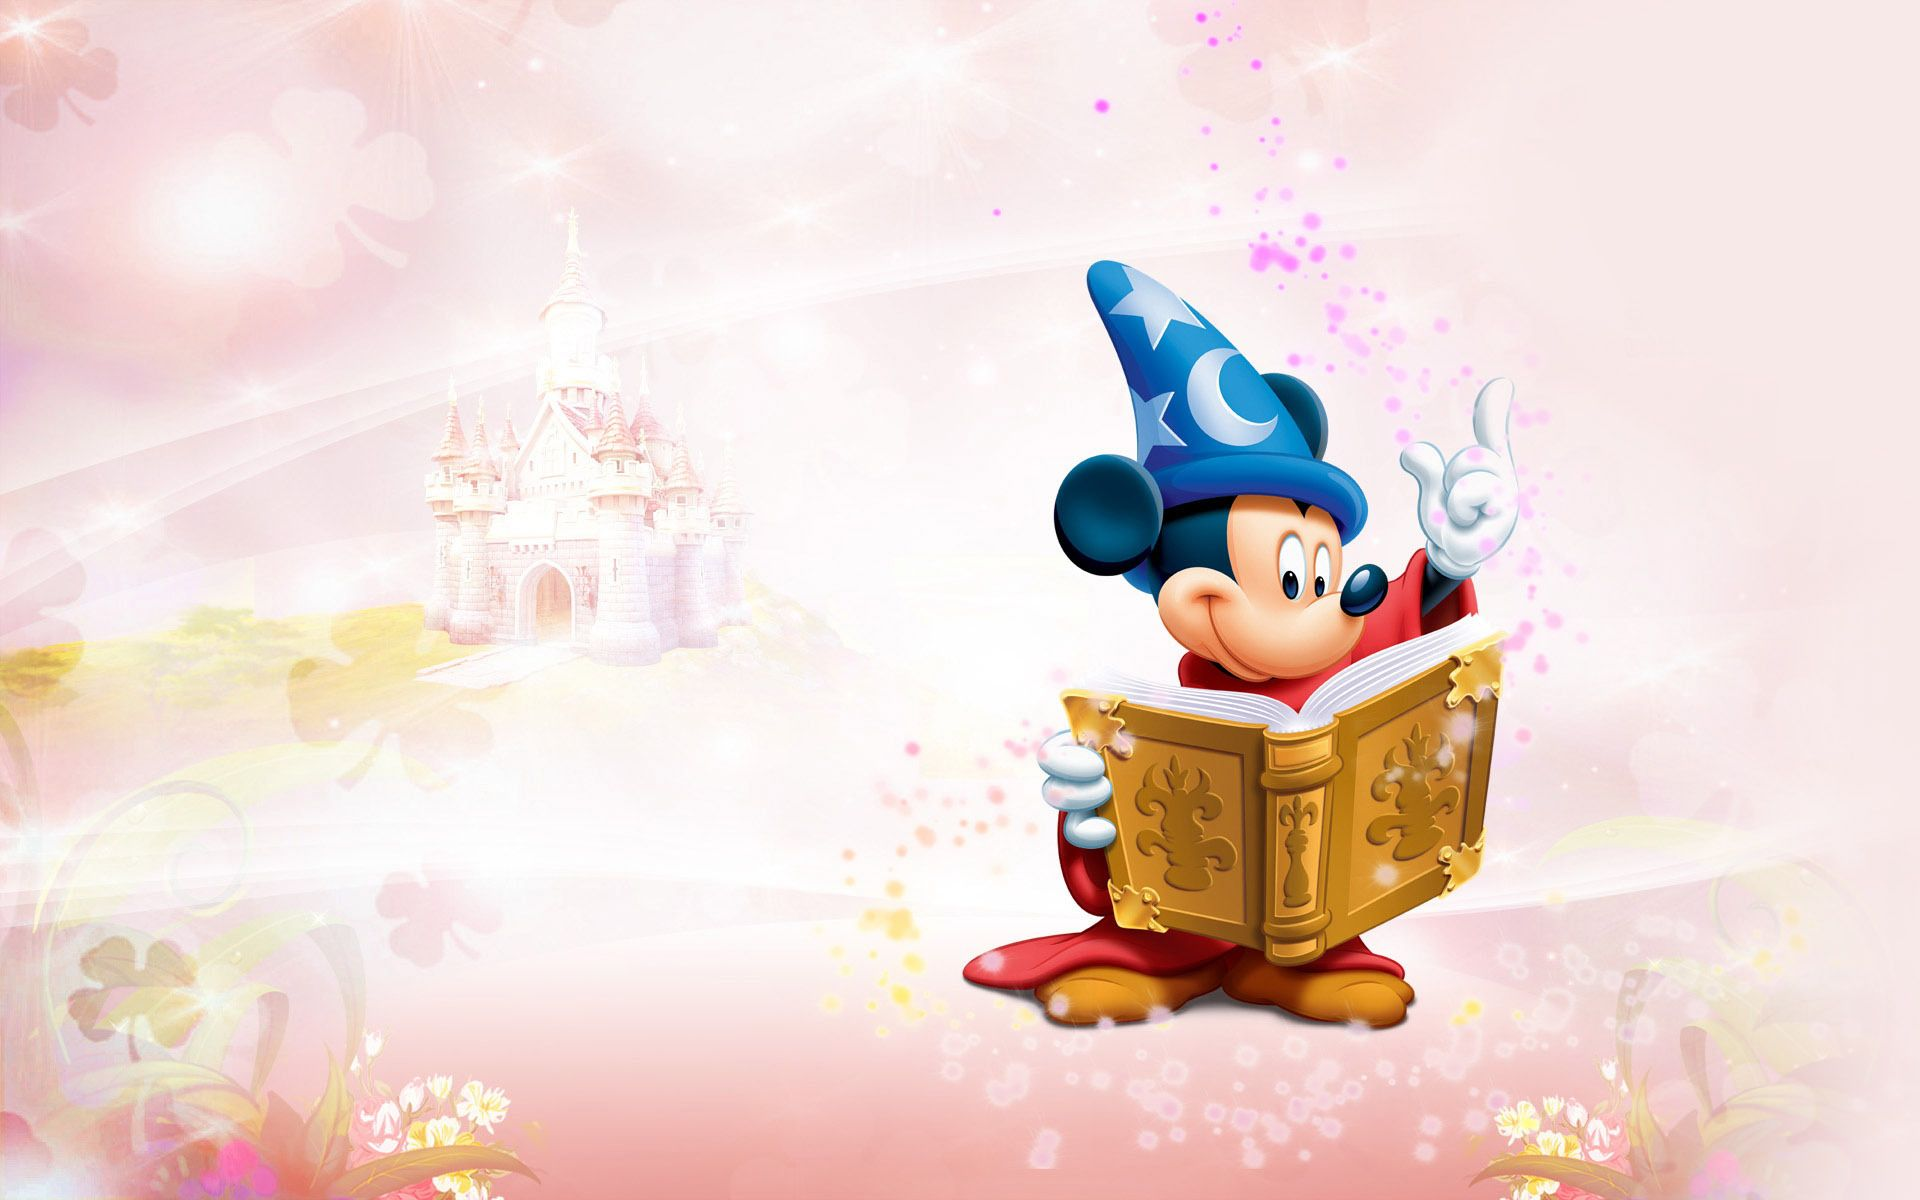 Mickey Mouse Backgrounds Mickey Mouse Wallpaper Mickey Mouse Background Mickey Mouse Wallpaper Iphone